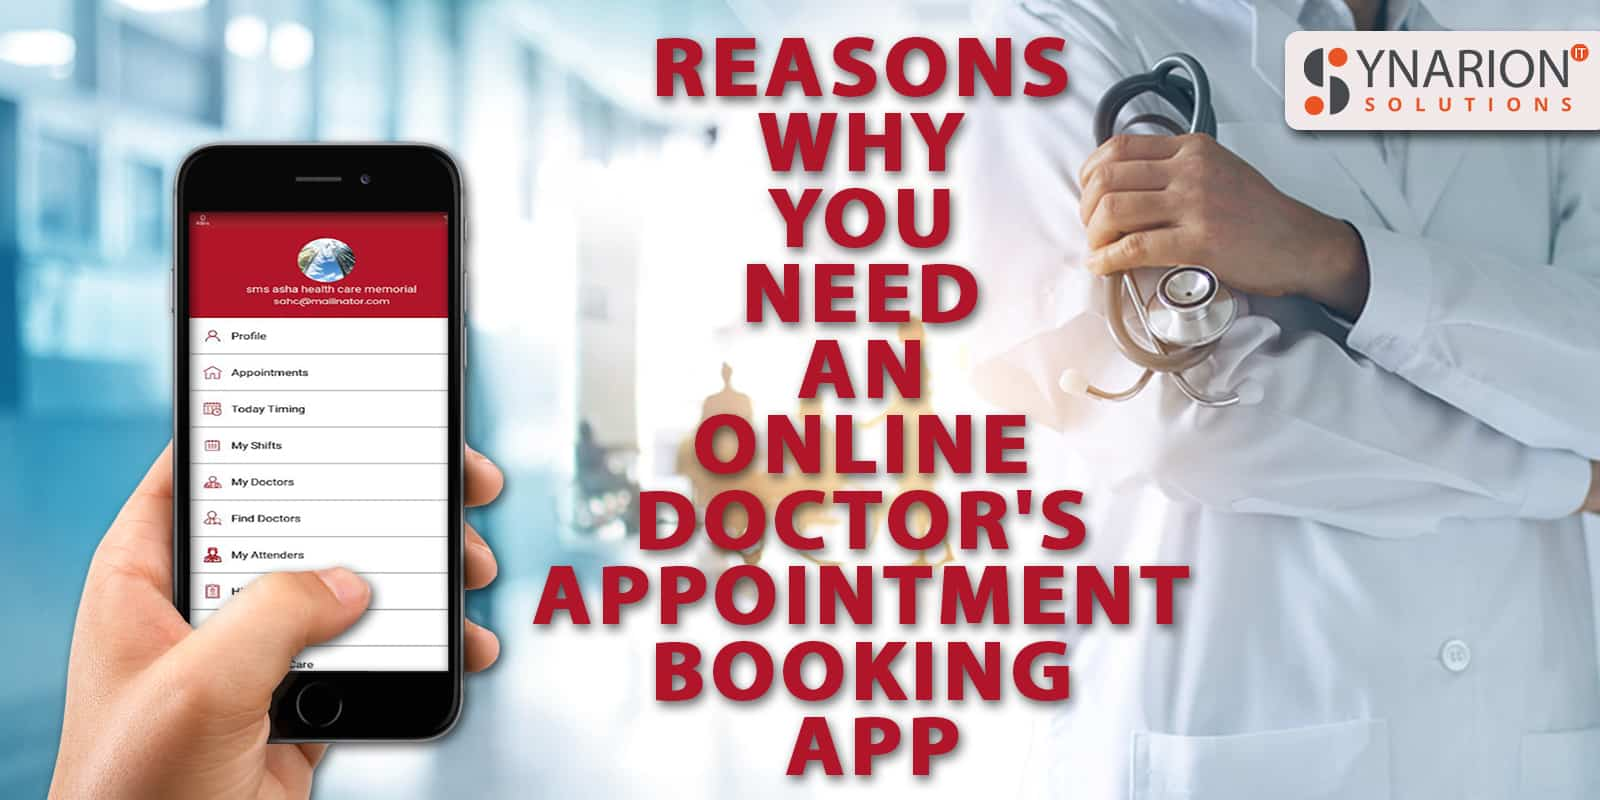 Reasons why you need an online doctors appointment booking app